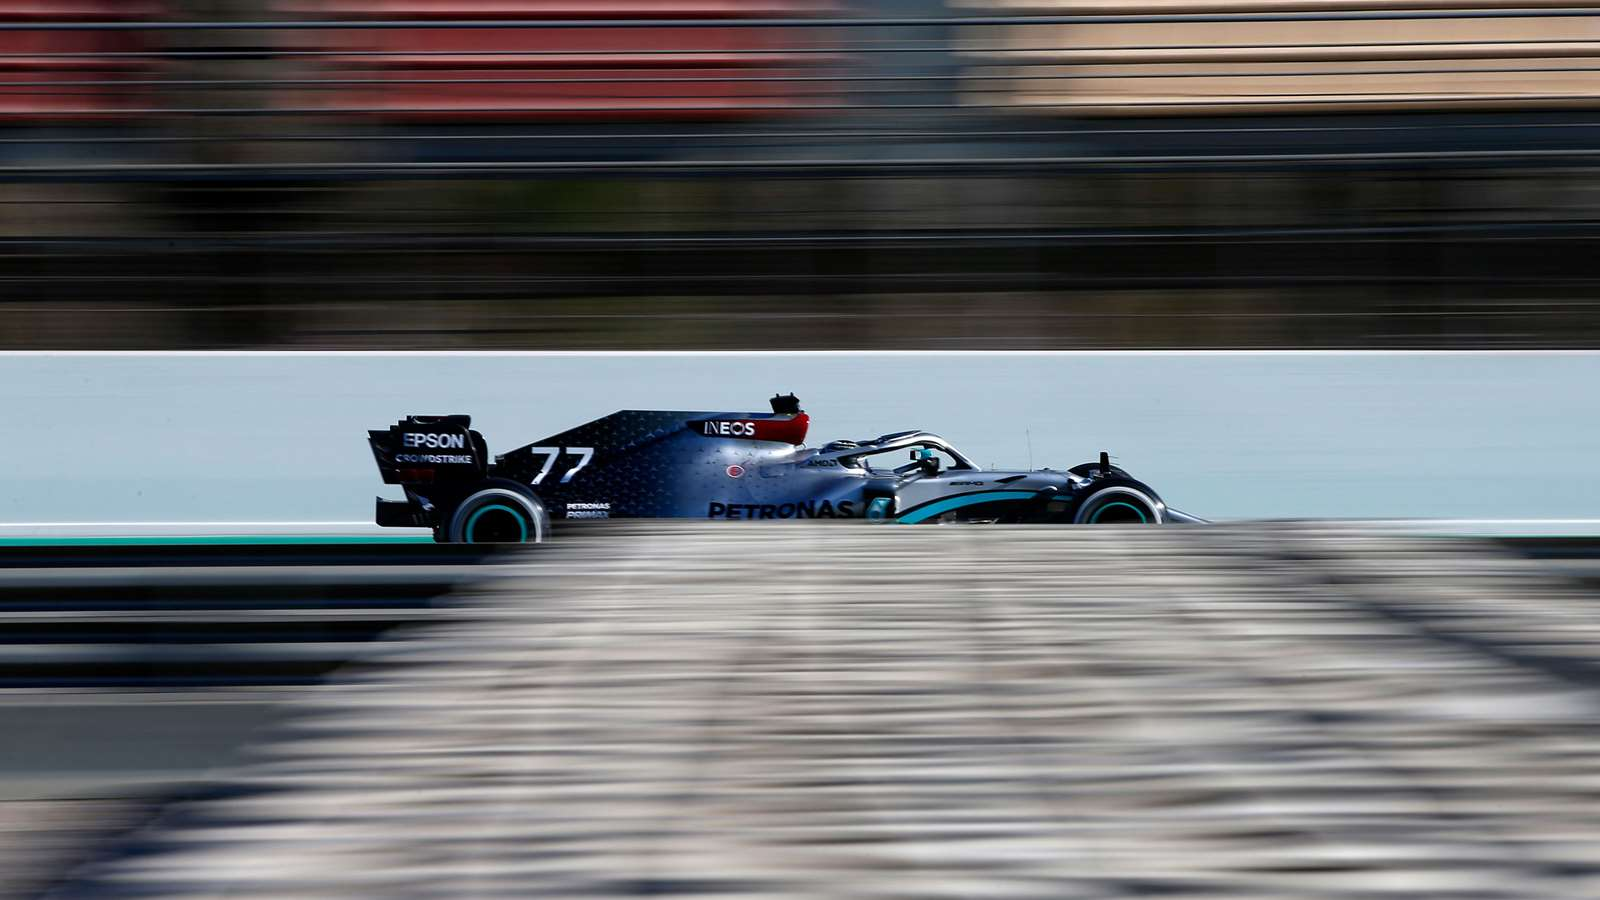 Ranked The 10 F1 Teams Of 2020 Ahead Of The Australian Grand Prix Grr